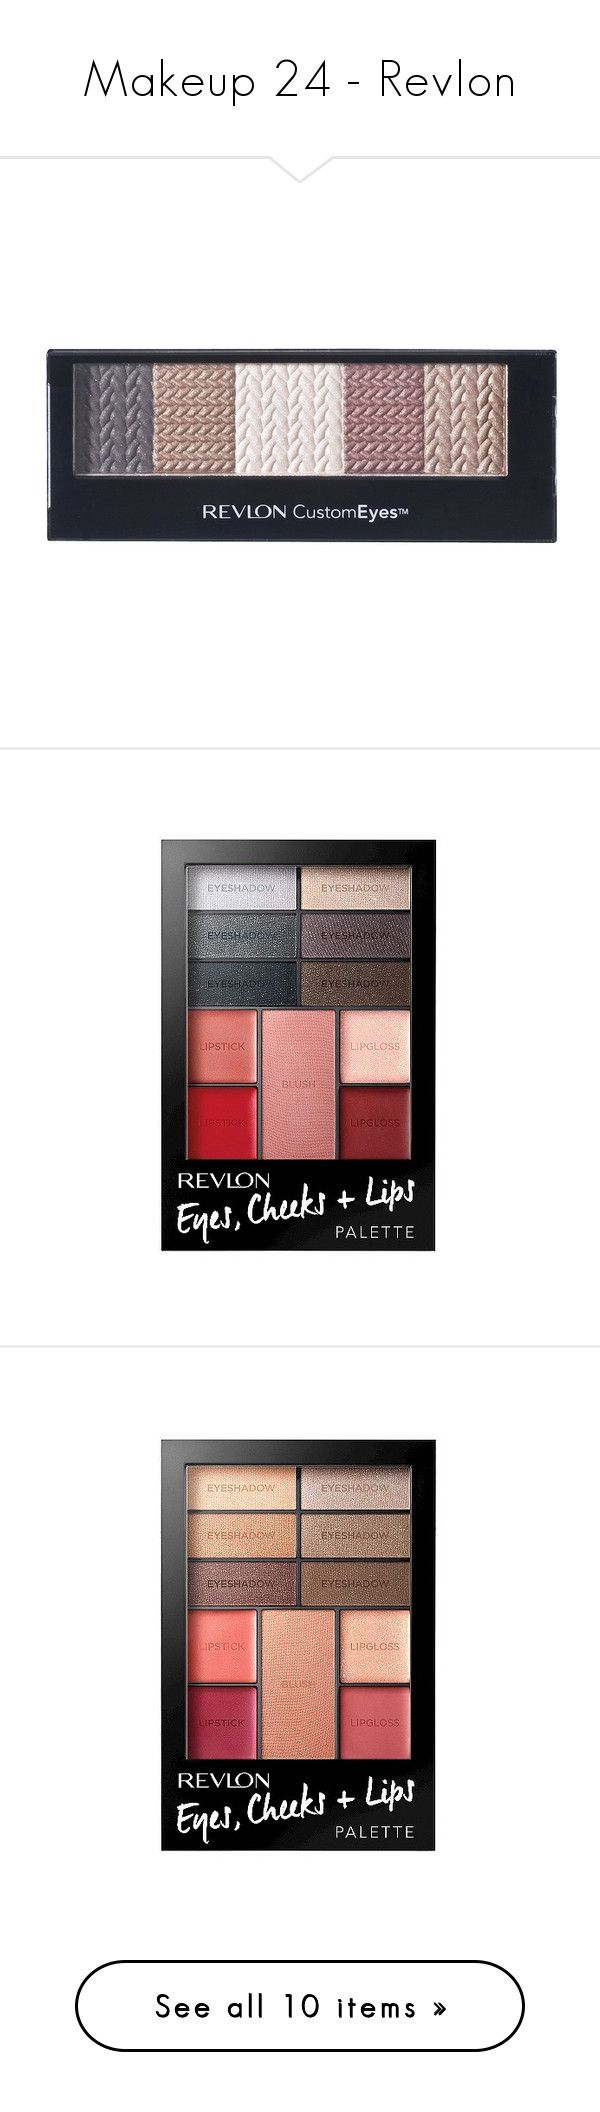 """""""Makeup 24 - Revlon"""" by middletondonna ❤ liked on Polyvore featuring beauty products, makeup, eye makeup, eyeshadow, revlon eye makeup, palette eyeshadow, revlon, revlon eye shadow, revlon eyeshadow and palette makeup"""